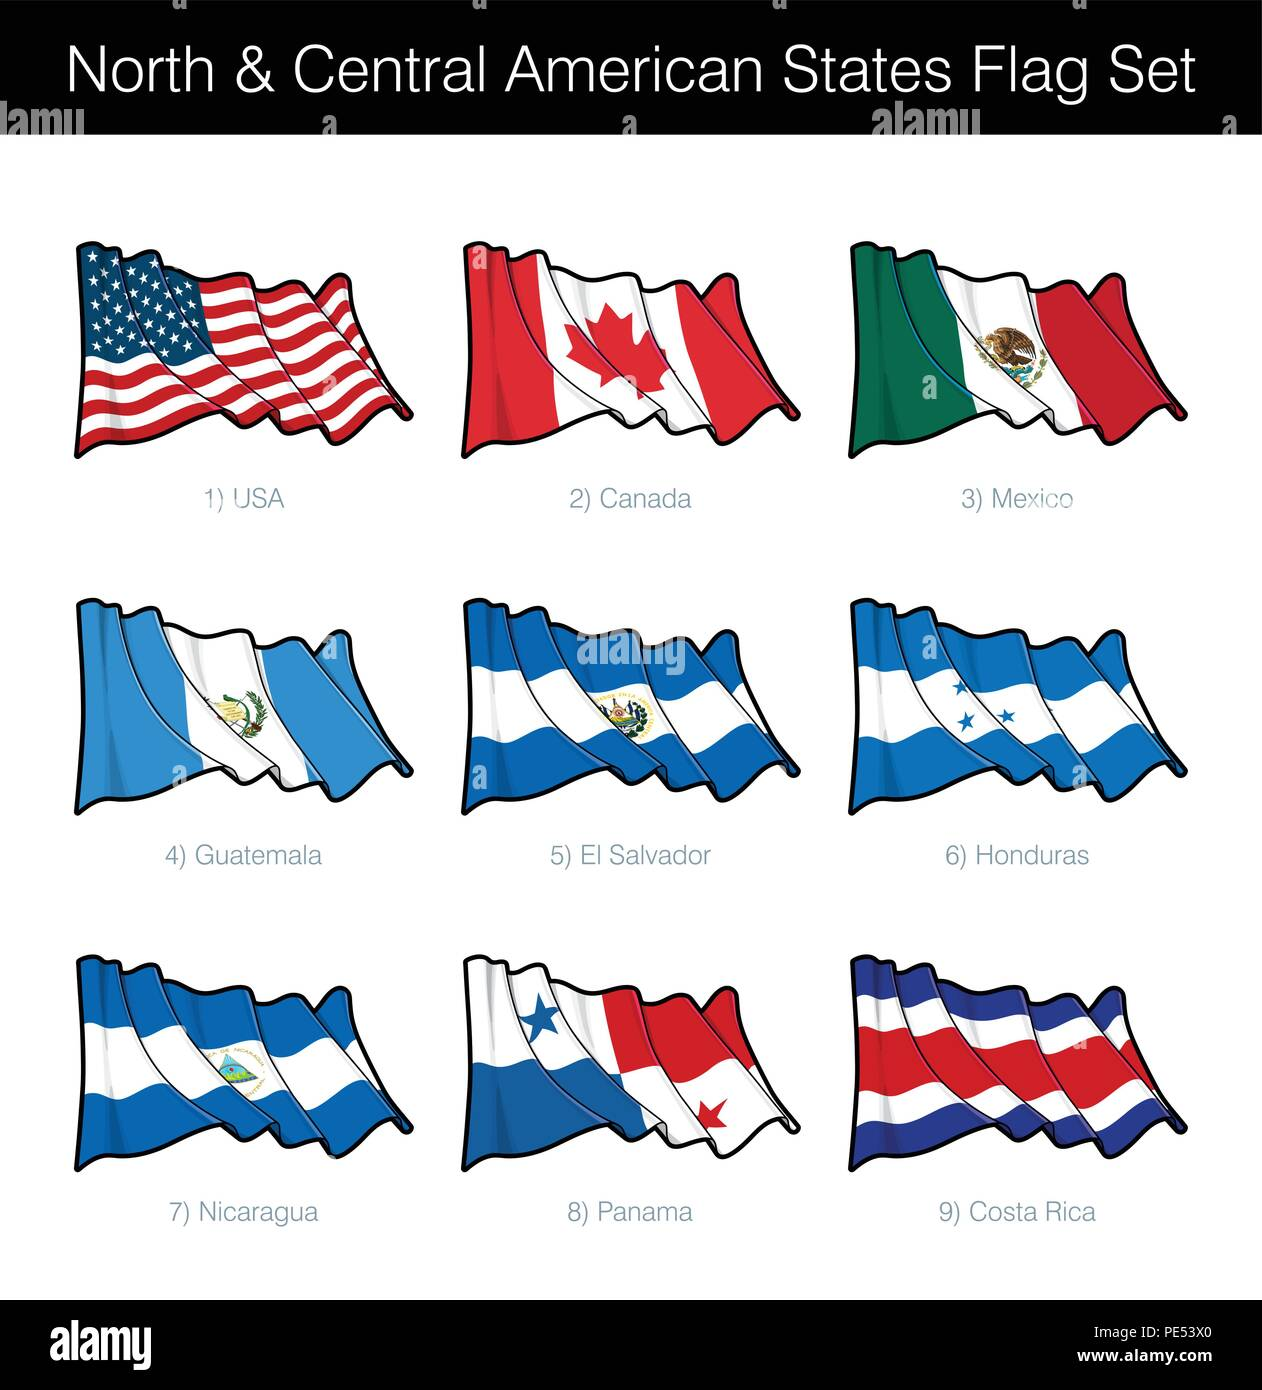 North and Central American States Waving Flag Set  The set